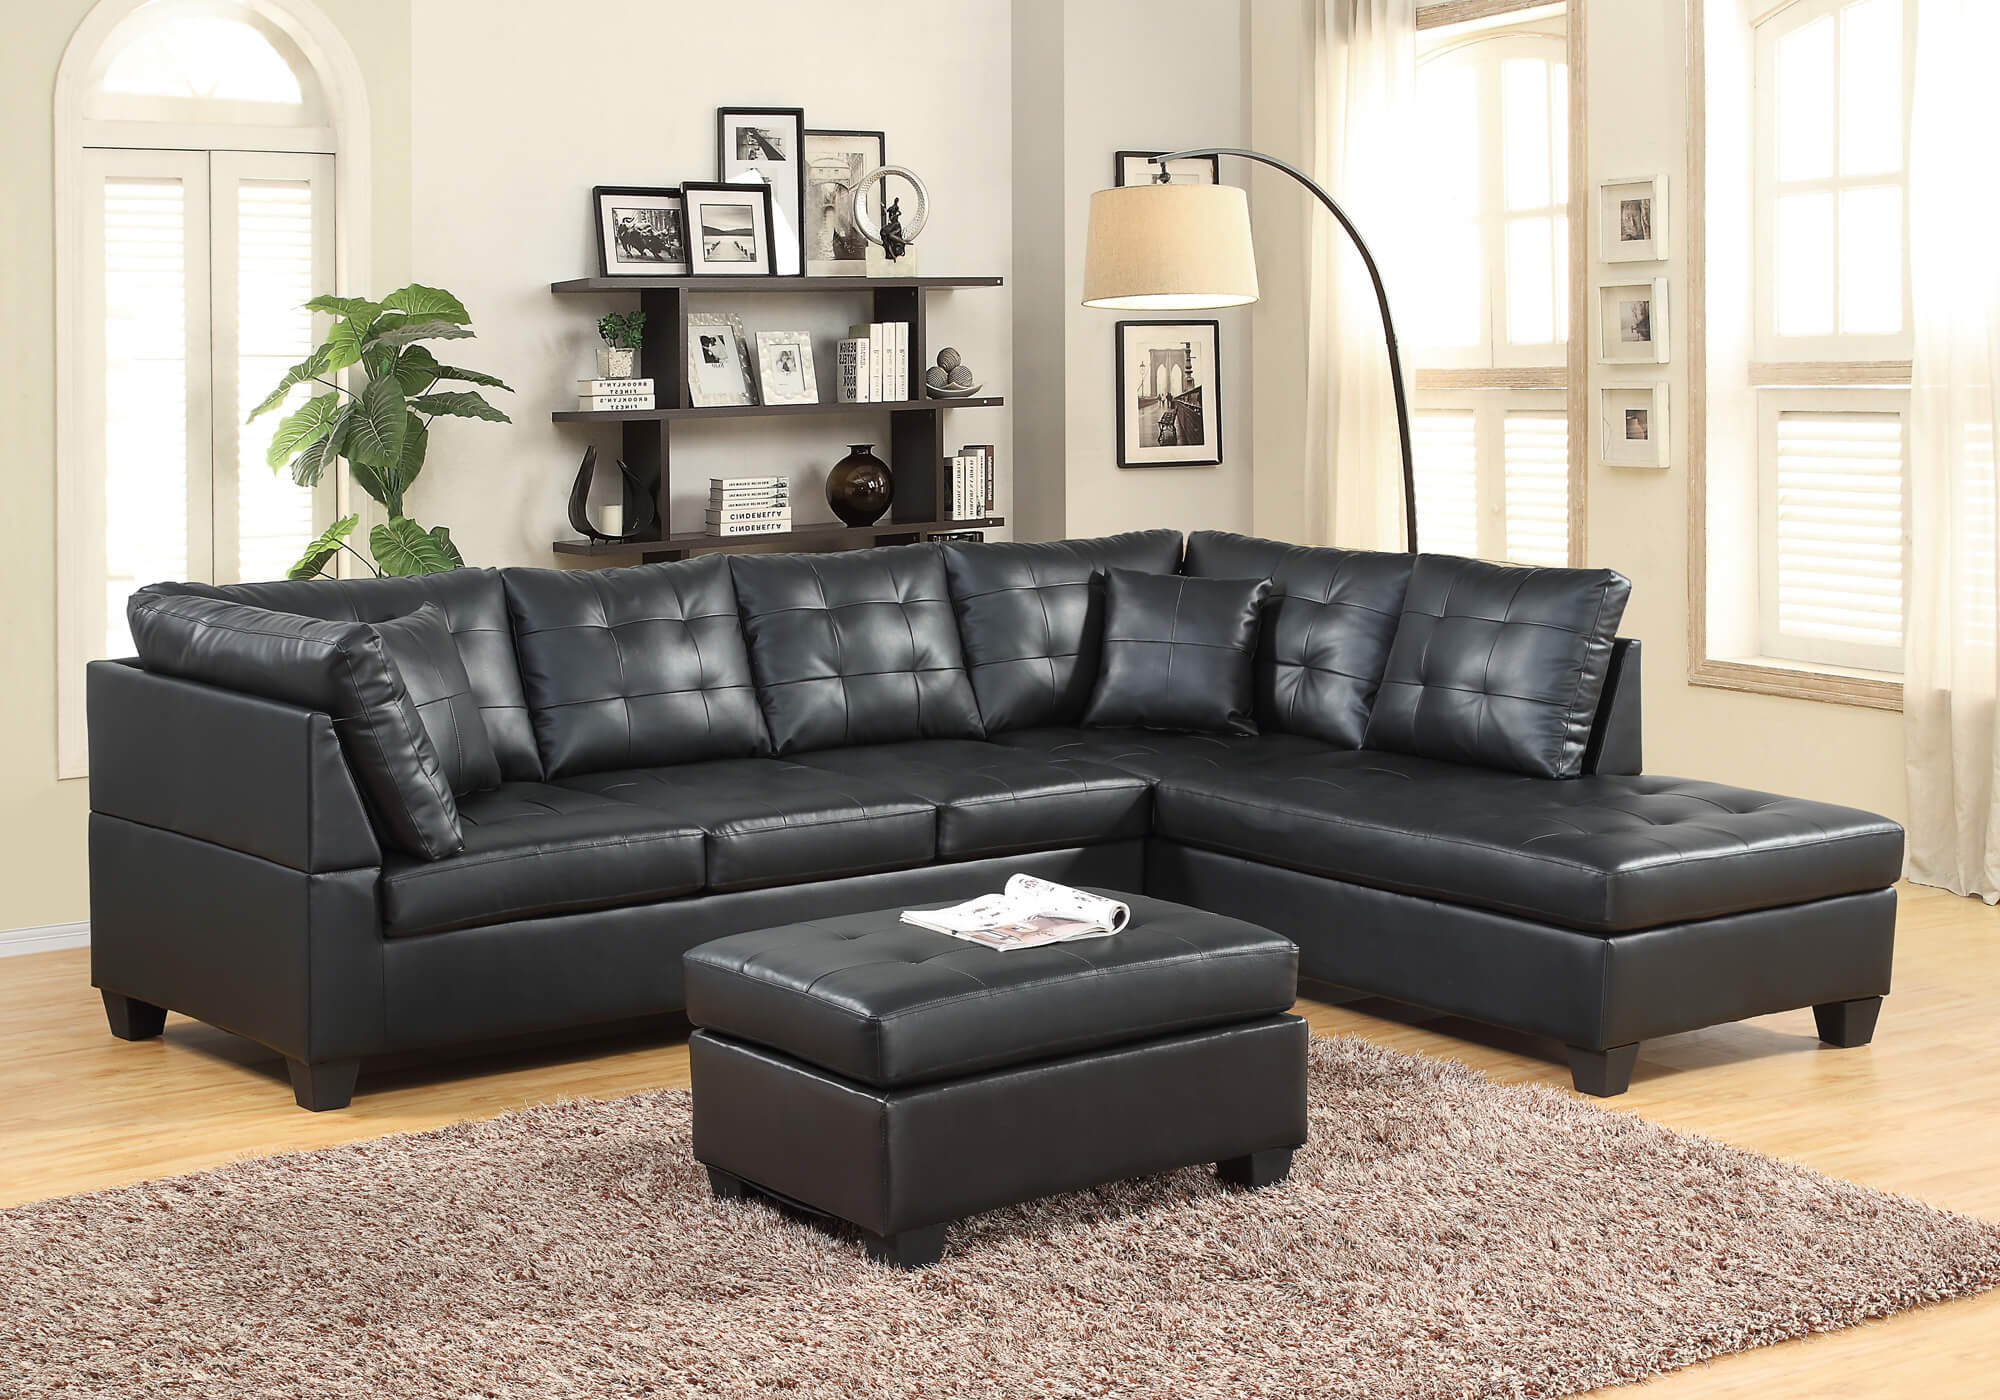 Black leather like sectiona sectional sofa sets for Apartment furniture